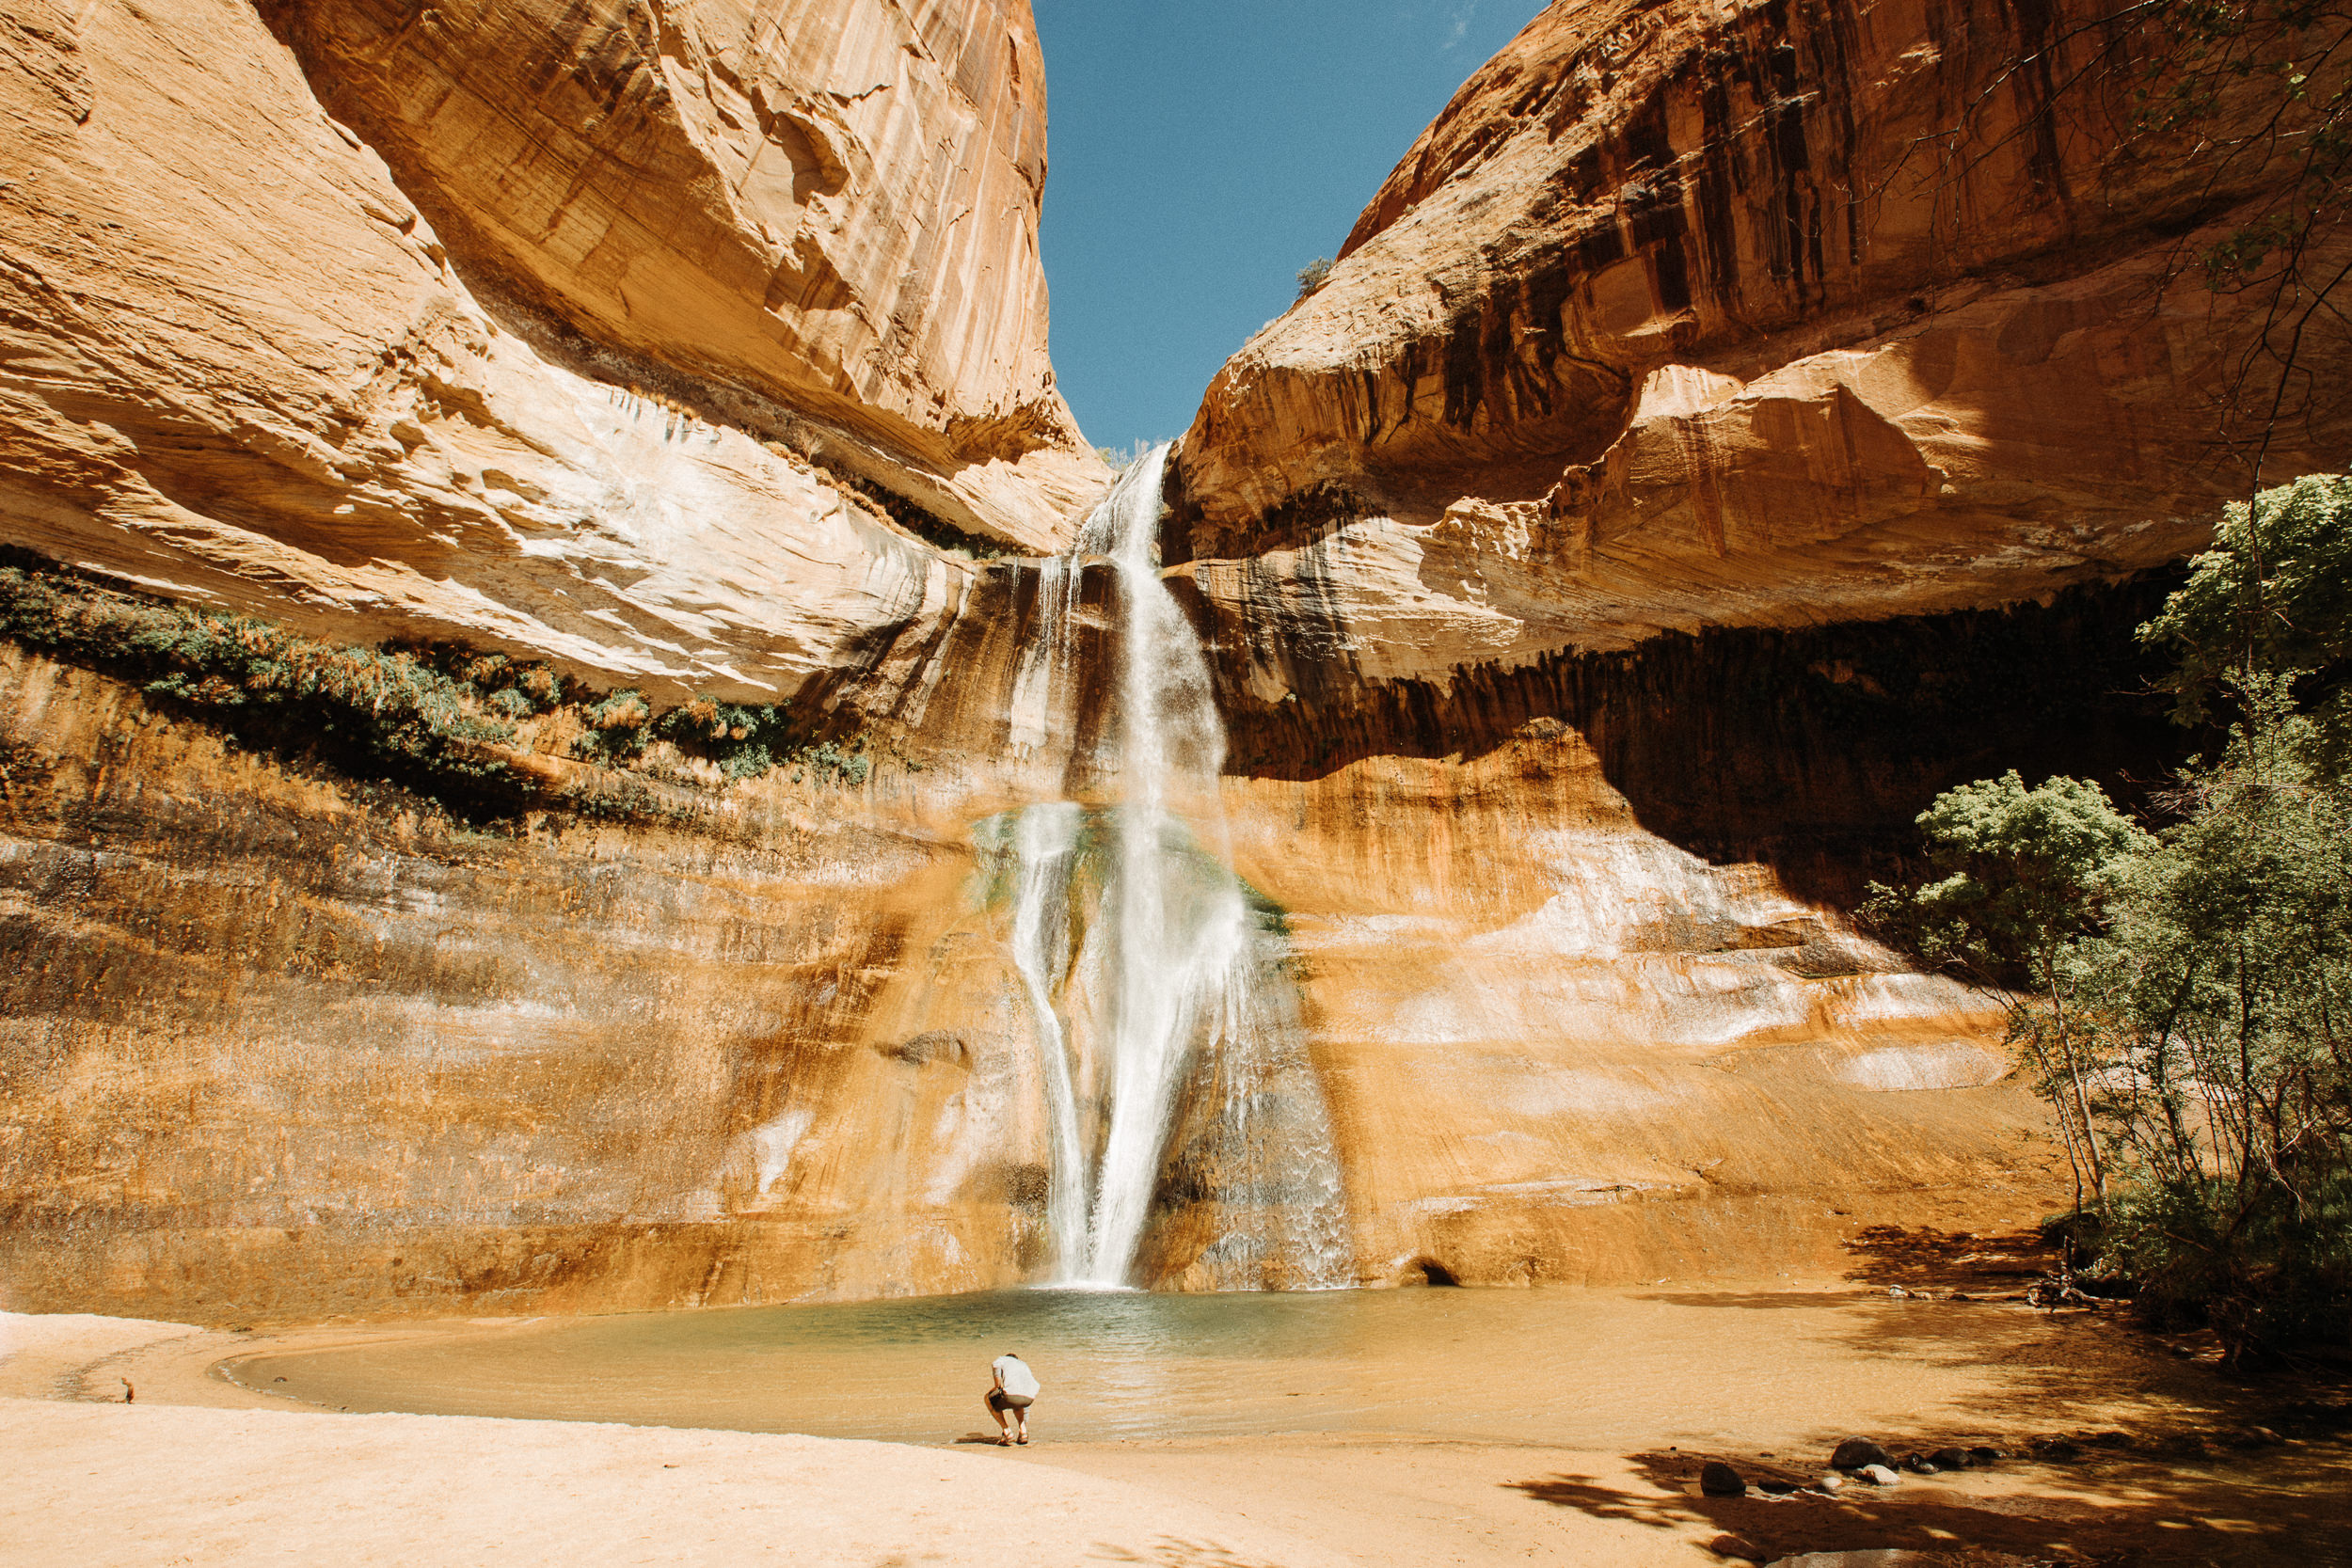 Calf Creek Falls in Grand Staircase-Escalante National Monument